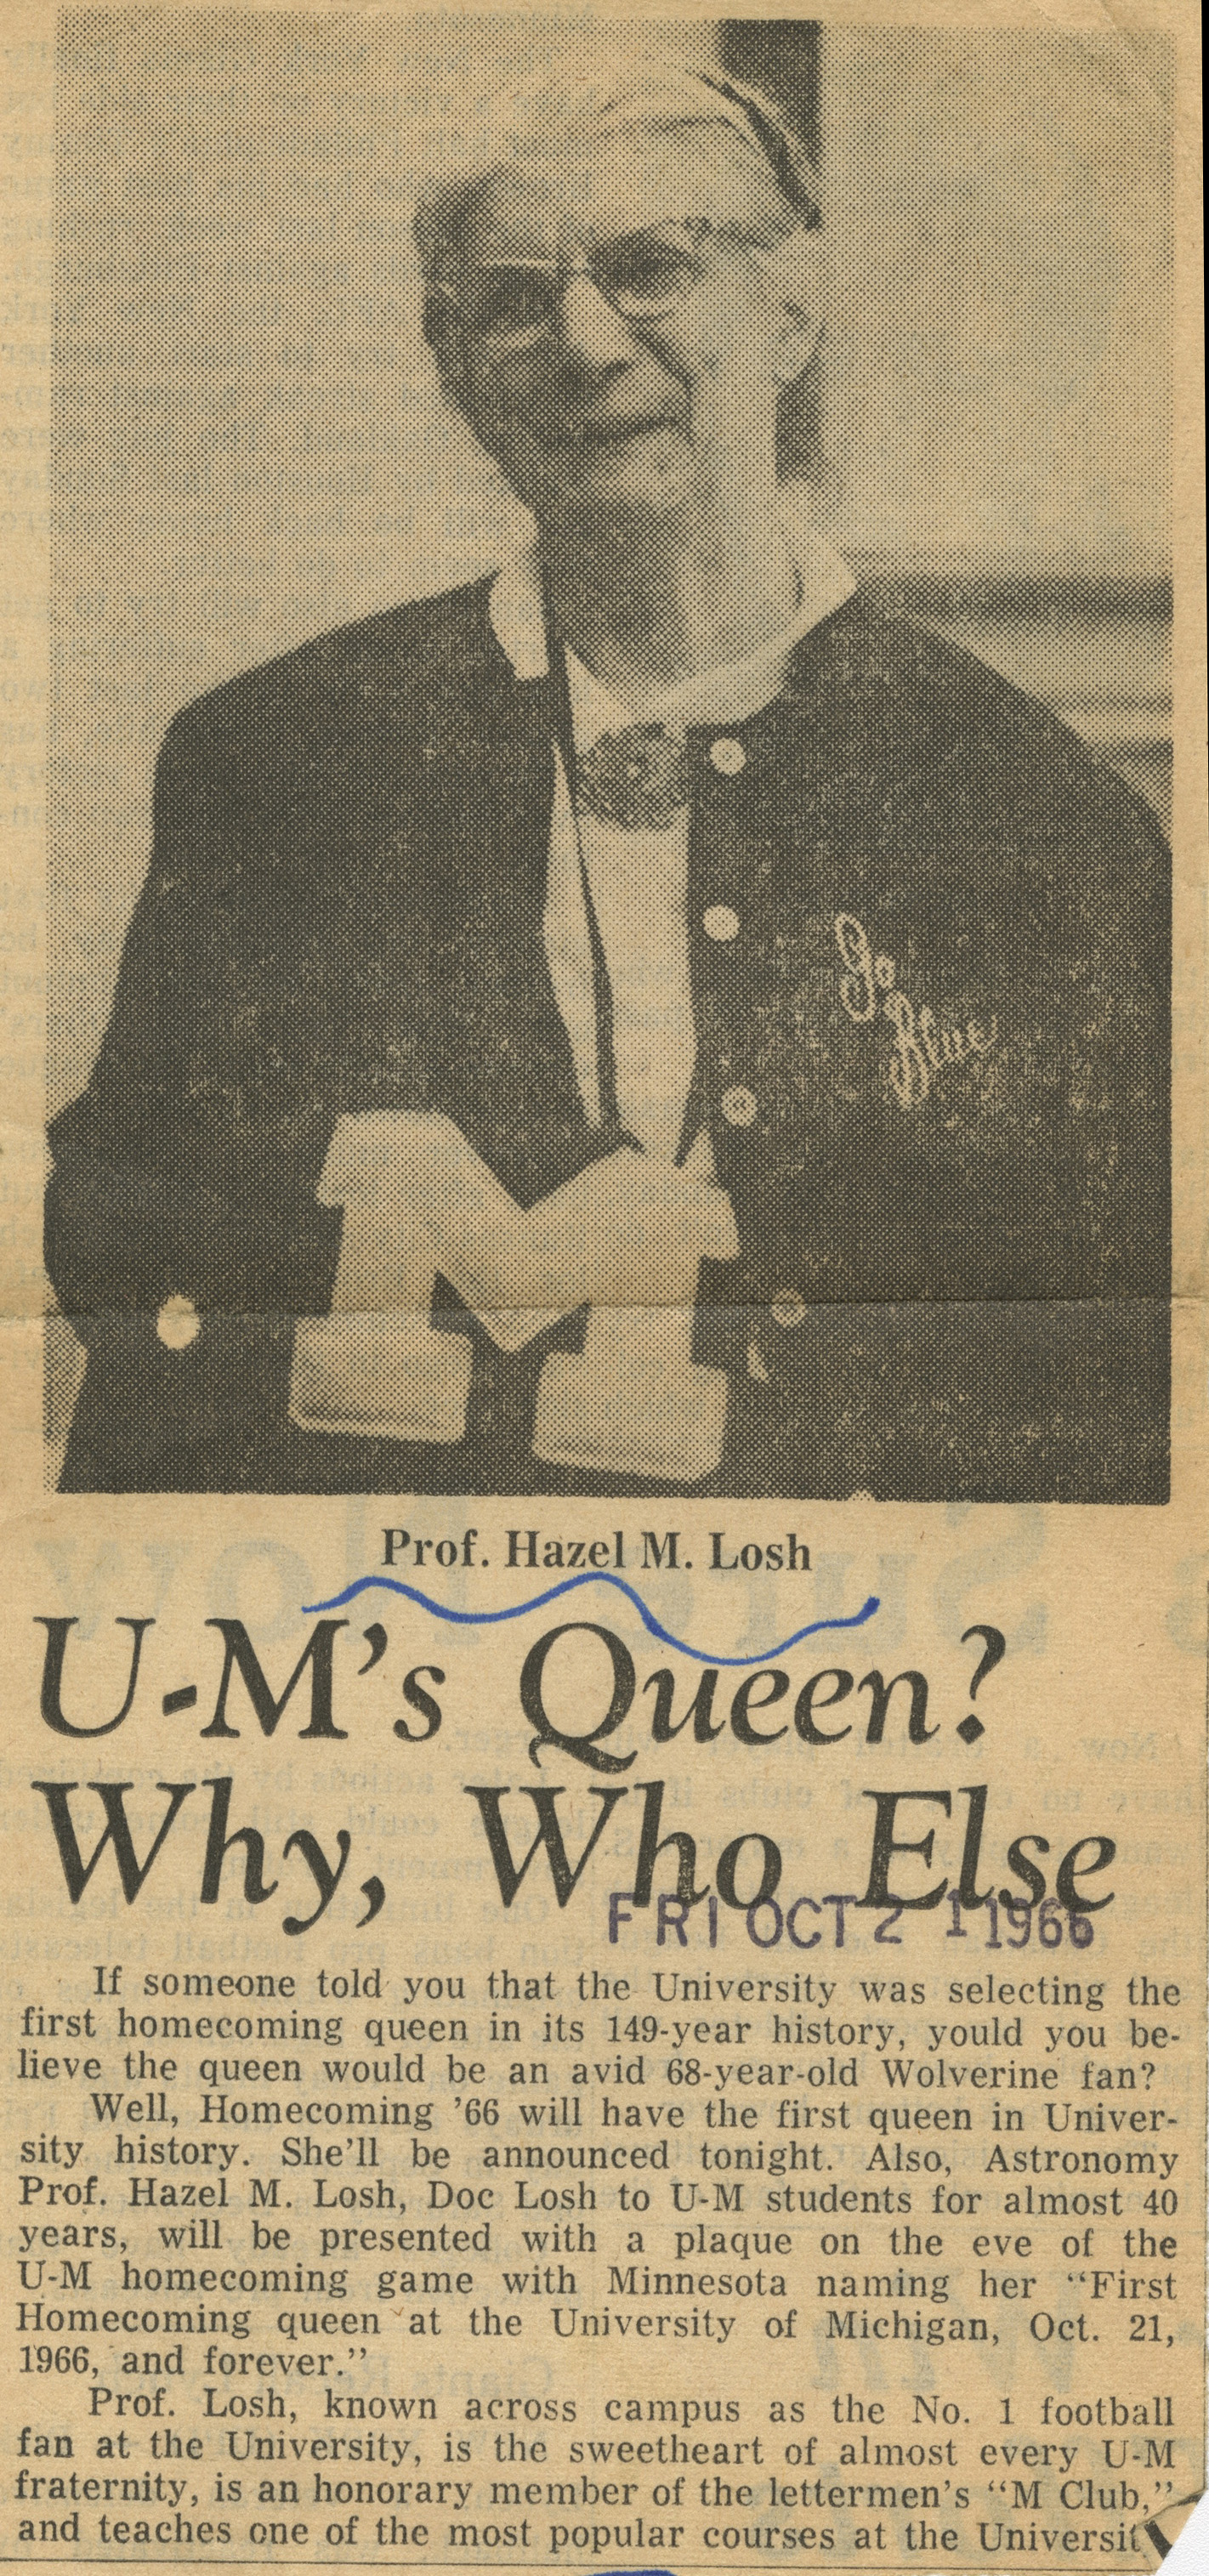 U-M's Queen? Why, Who Else image